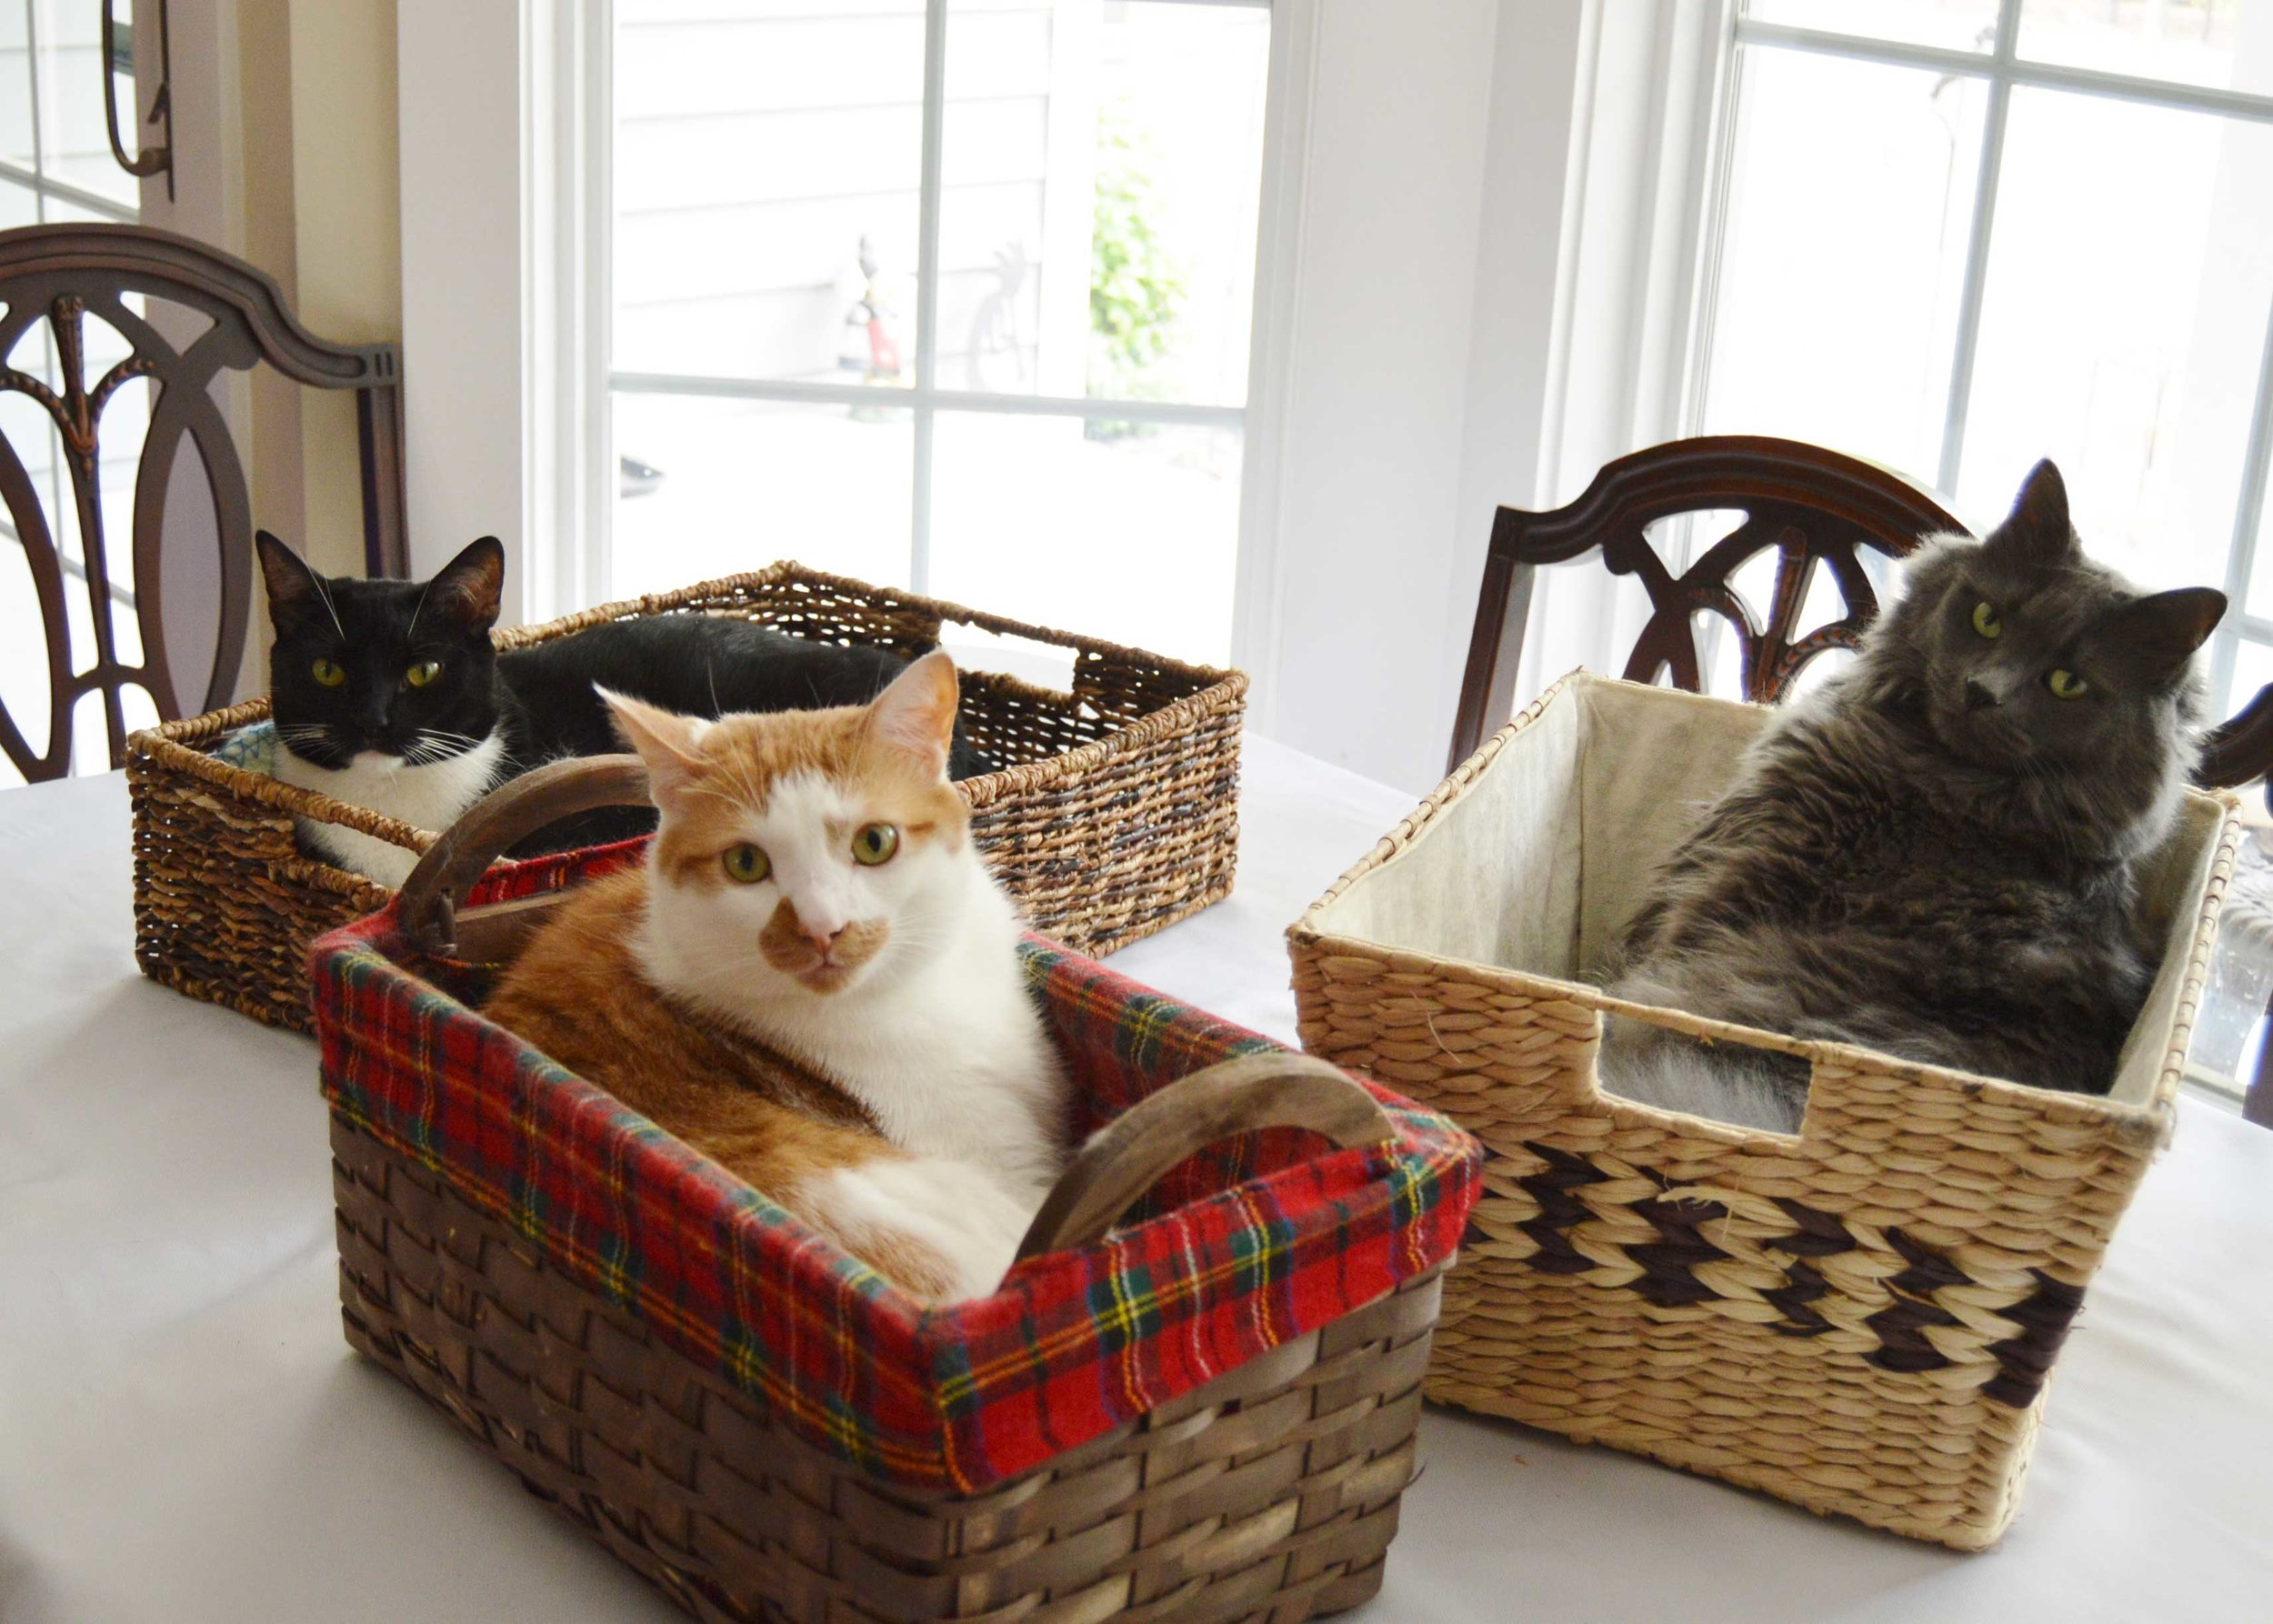 Our three cats in baskets